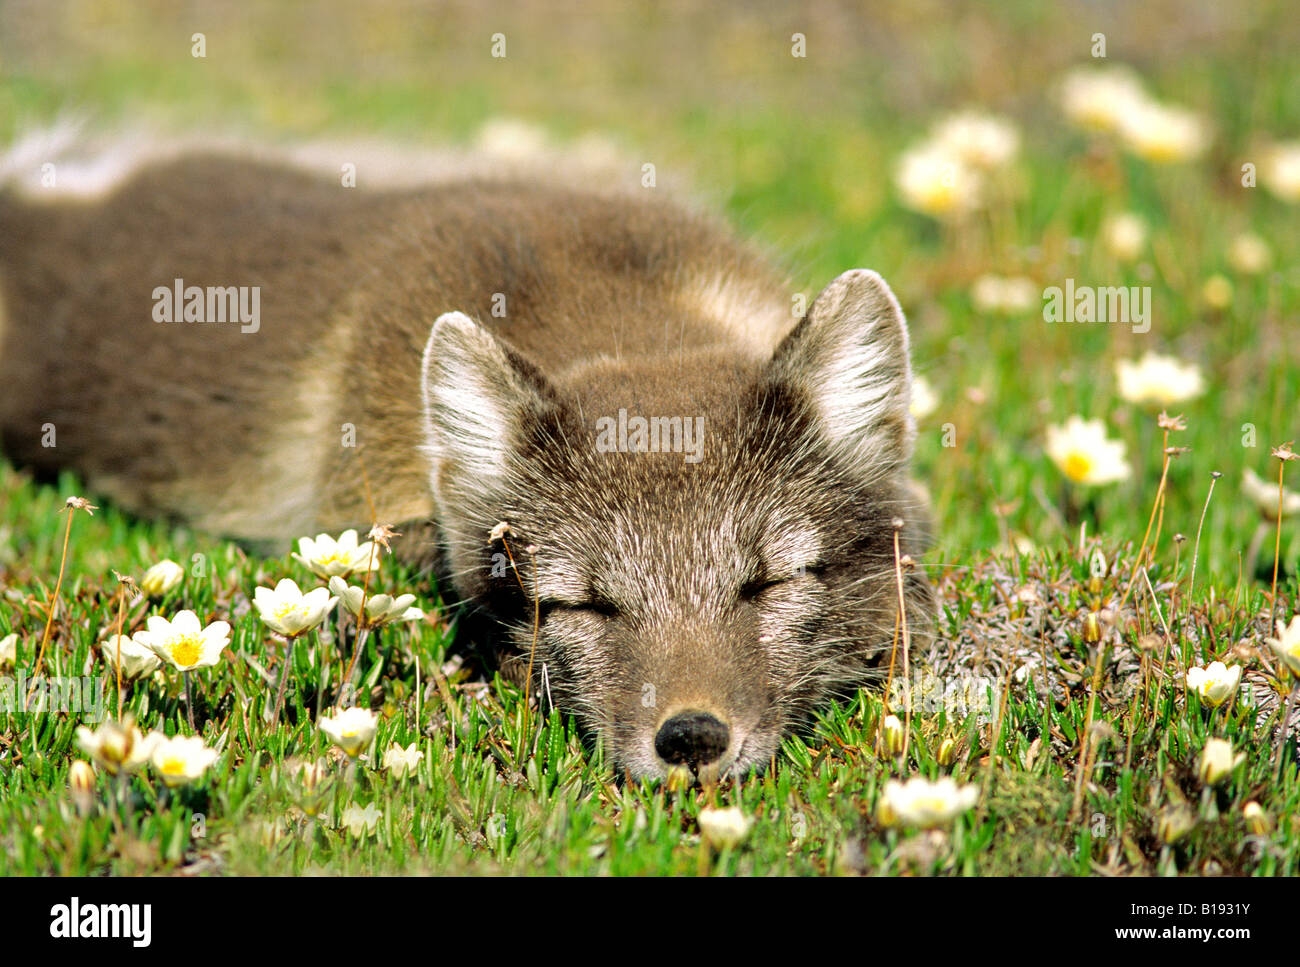 Arctic fox (Alopex lagopus) in summer pelage,    sleeping on a tundra of mountain avens (Dryas integrifolia), Arctic - Stock Image